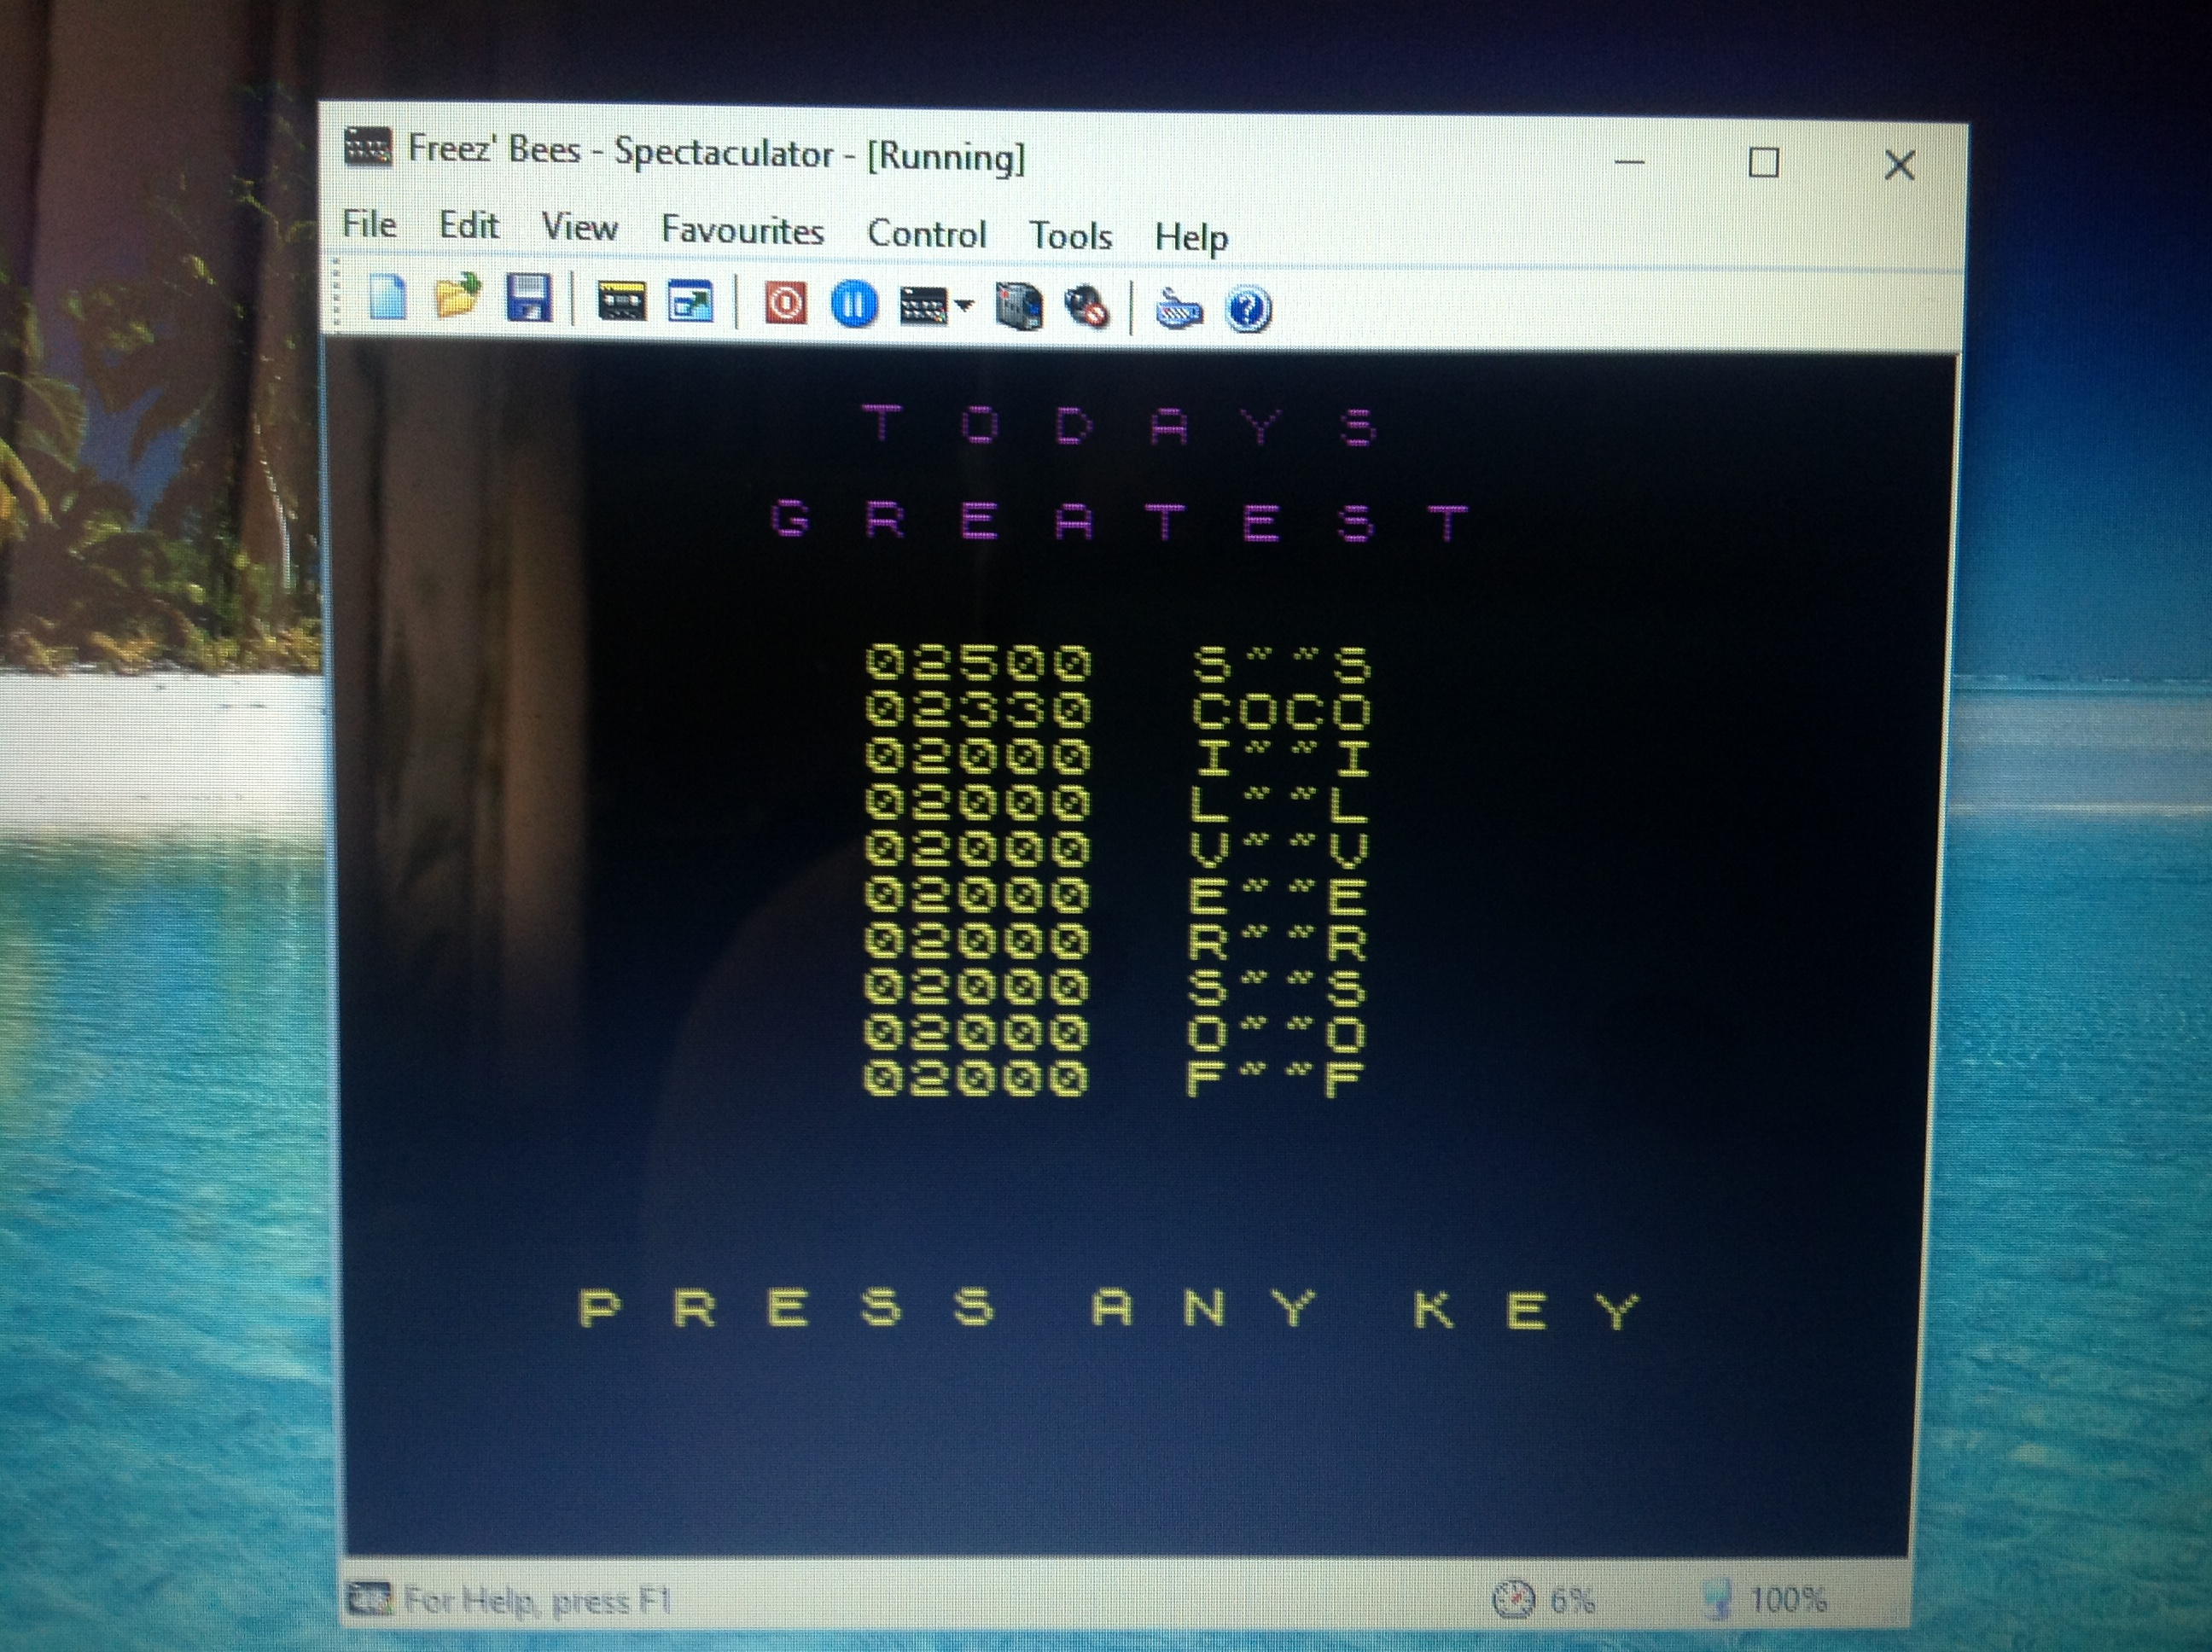 CoCoForest: Freez Bees (ZX Spectrum Emulated) 2,330 points on 2017-08-07 10:51:19